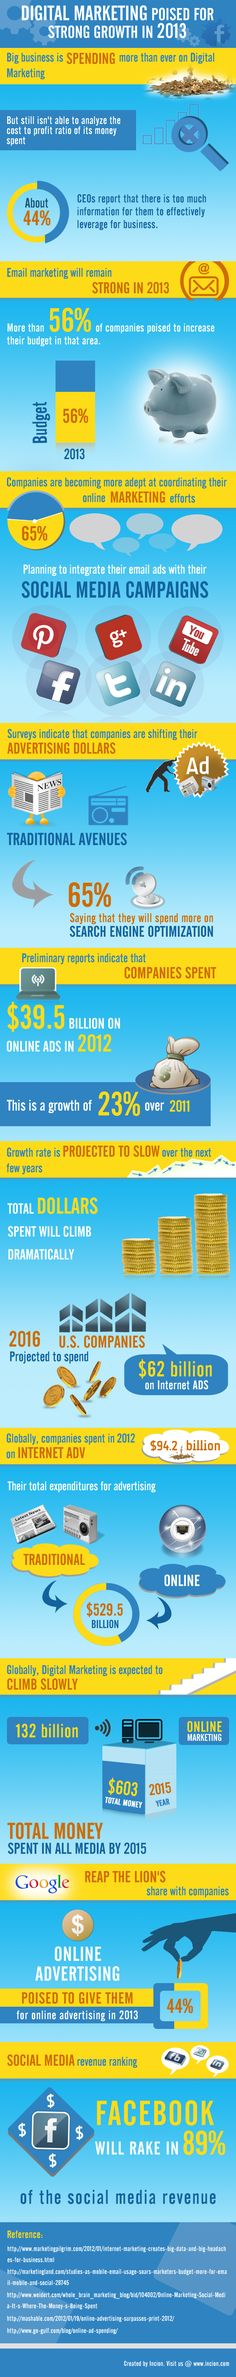 Growth of digital marketing in 2013